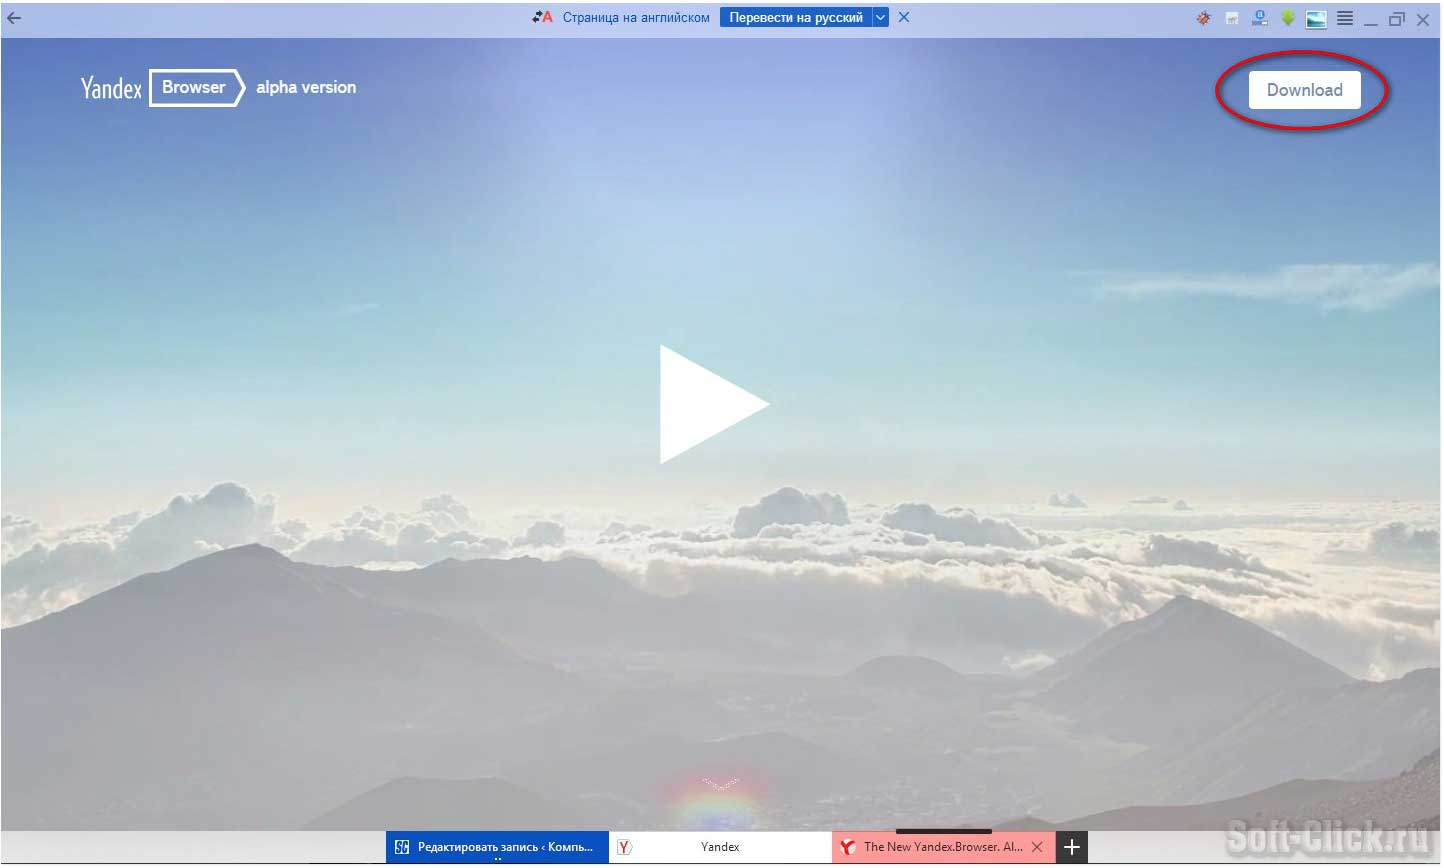 Moving wallpaper  Themes for Yandex browser, where to